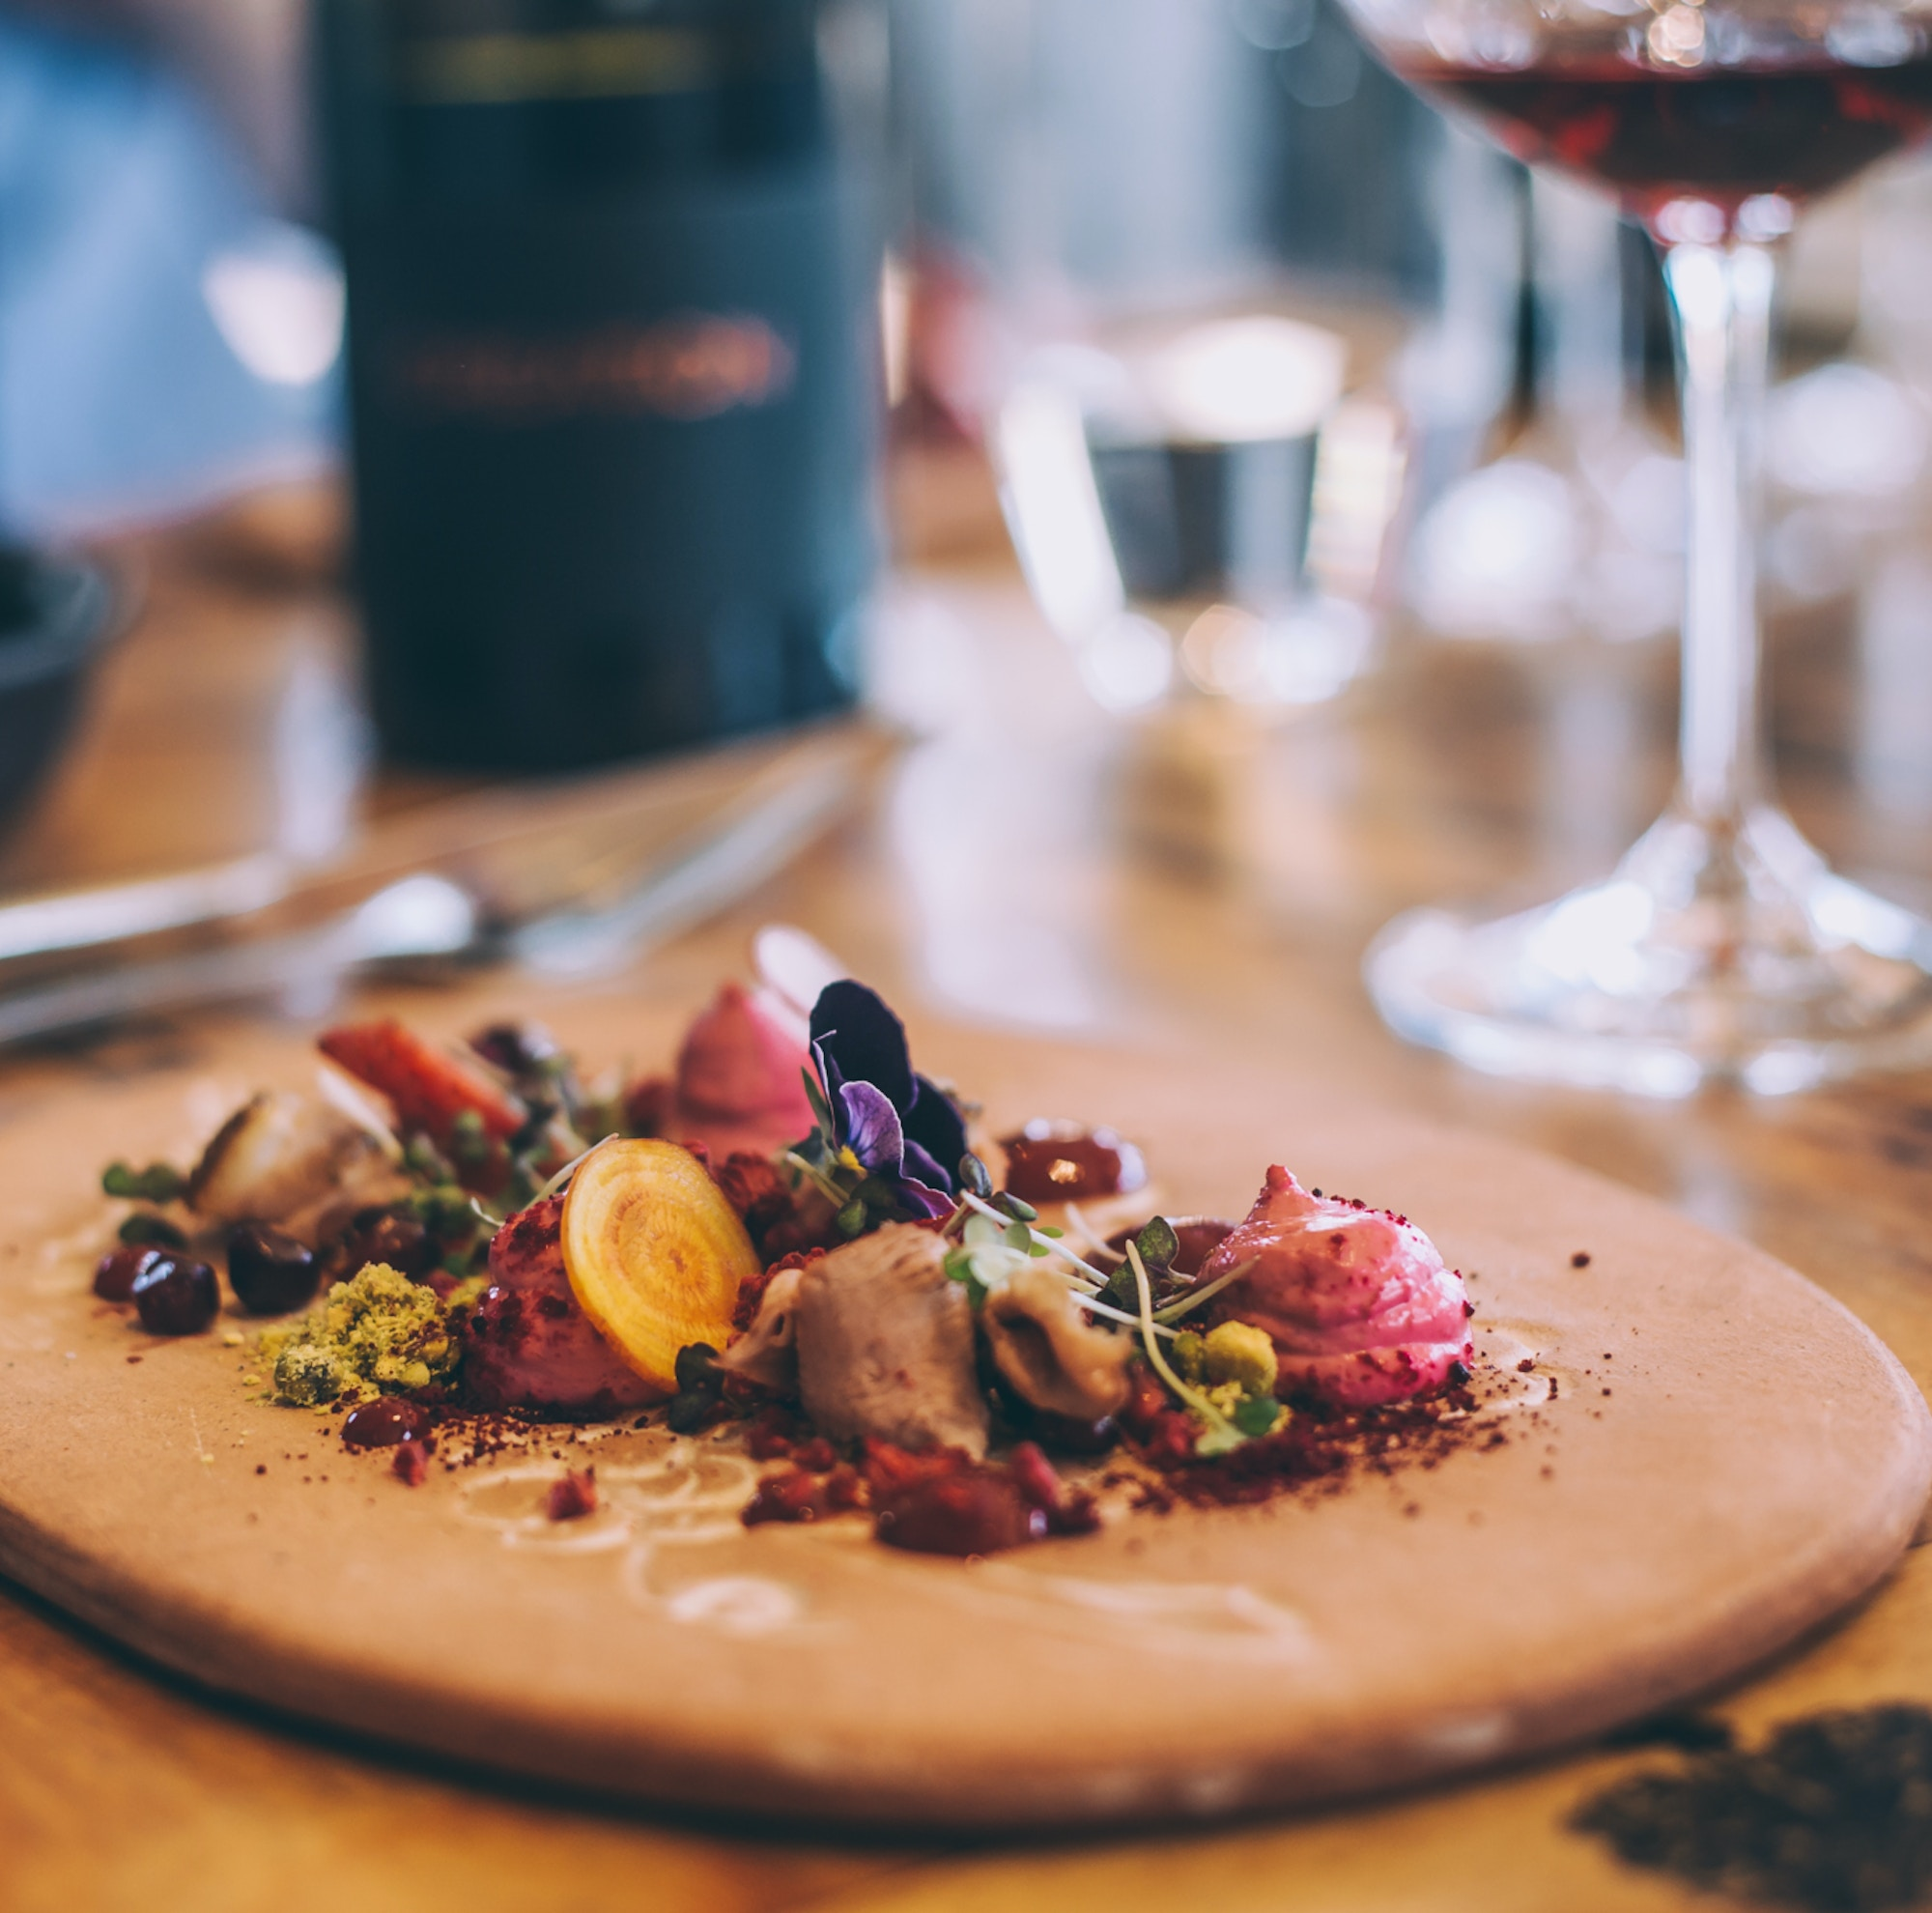 Food and Wine at Creation Wine Estate in Hermanus Image credit Shawn Ugulu